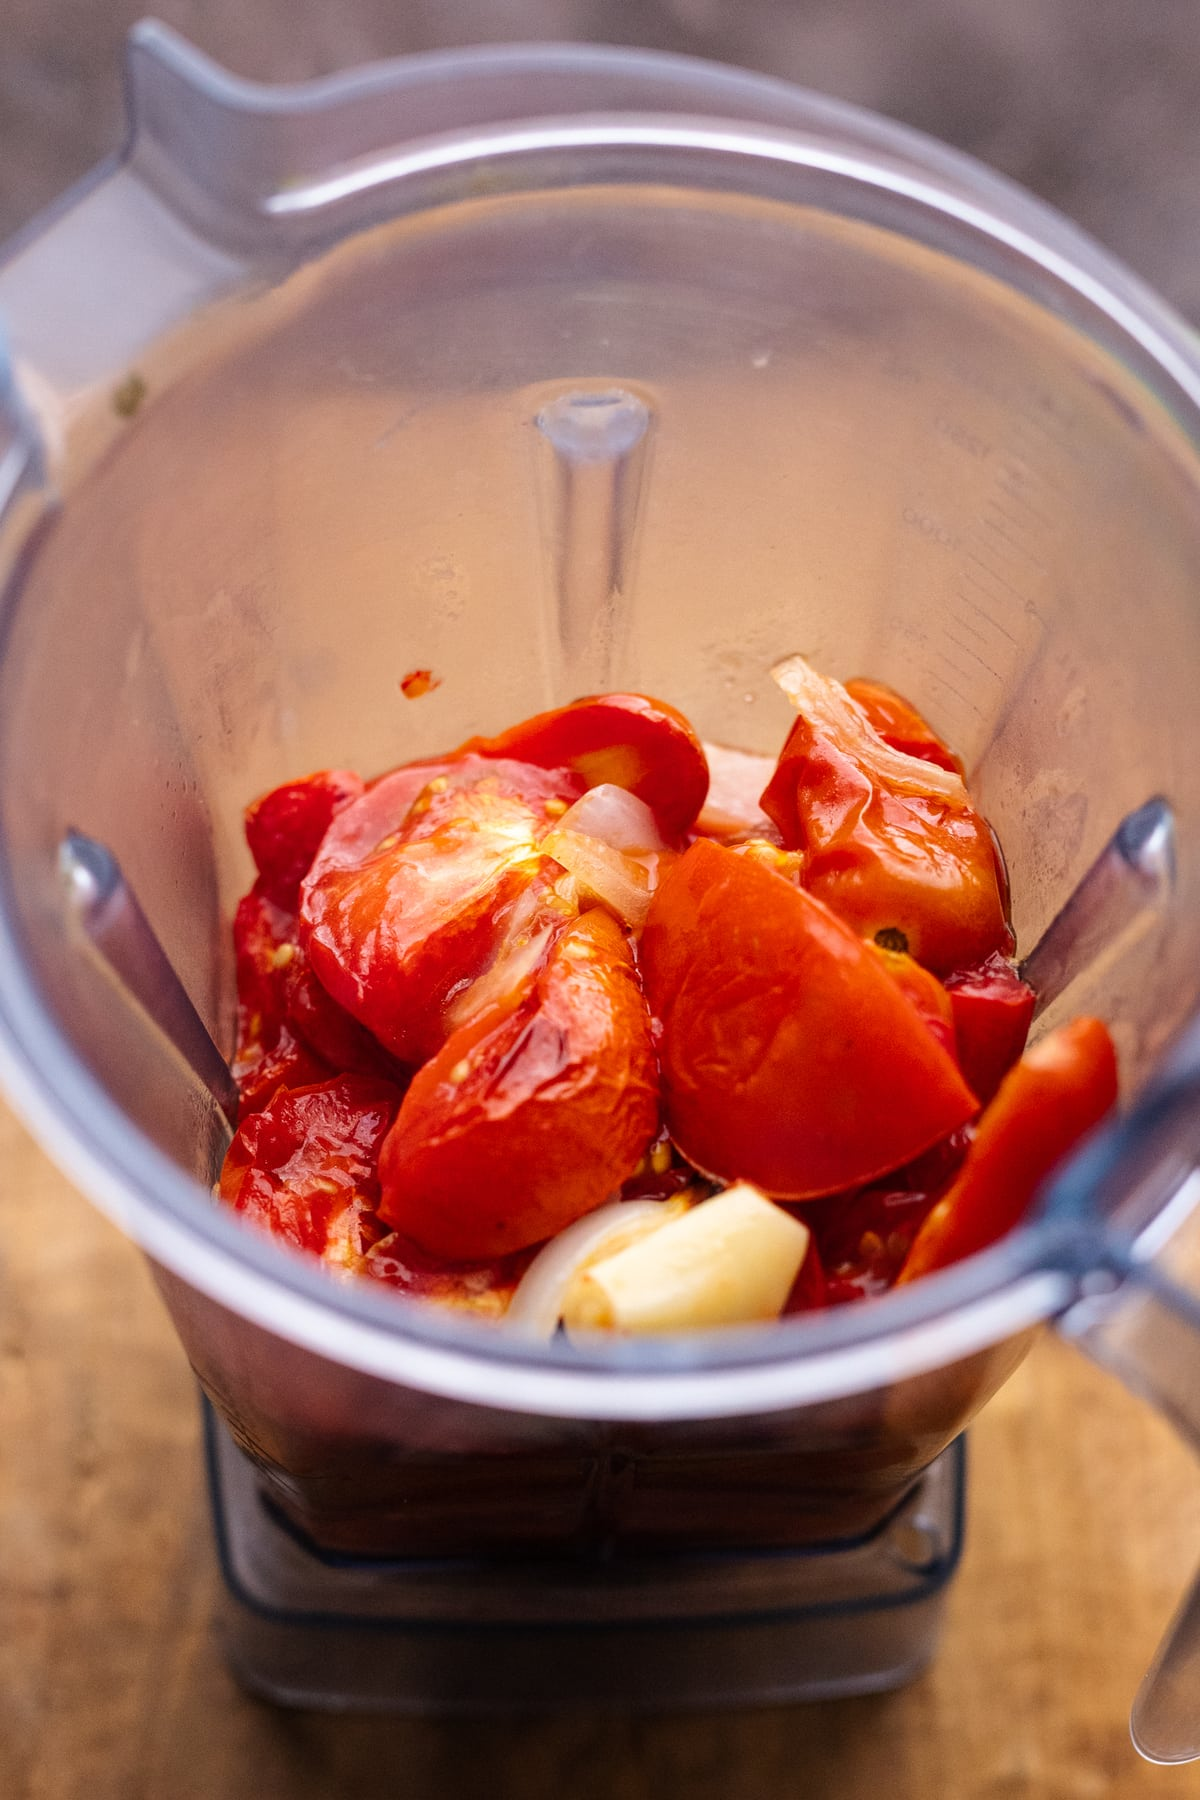 roasted tomatoes and garlic in a plastic blender container on a wooden board.